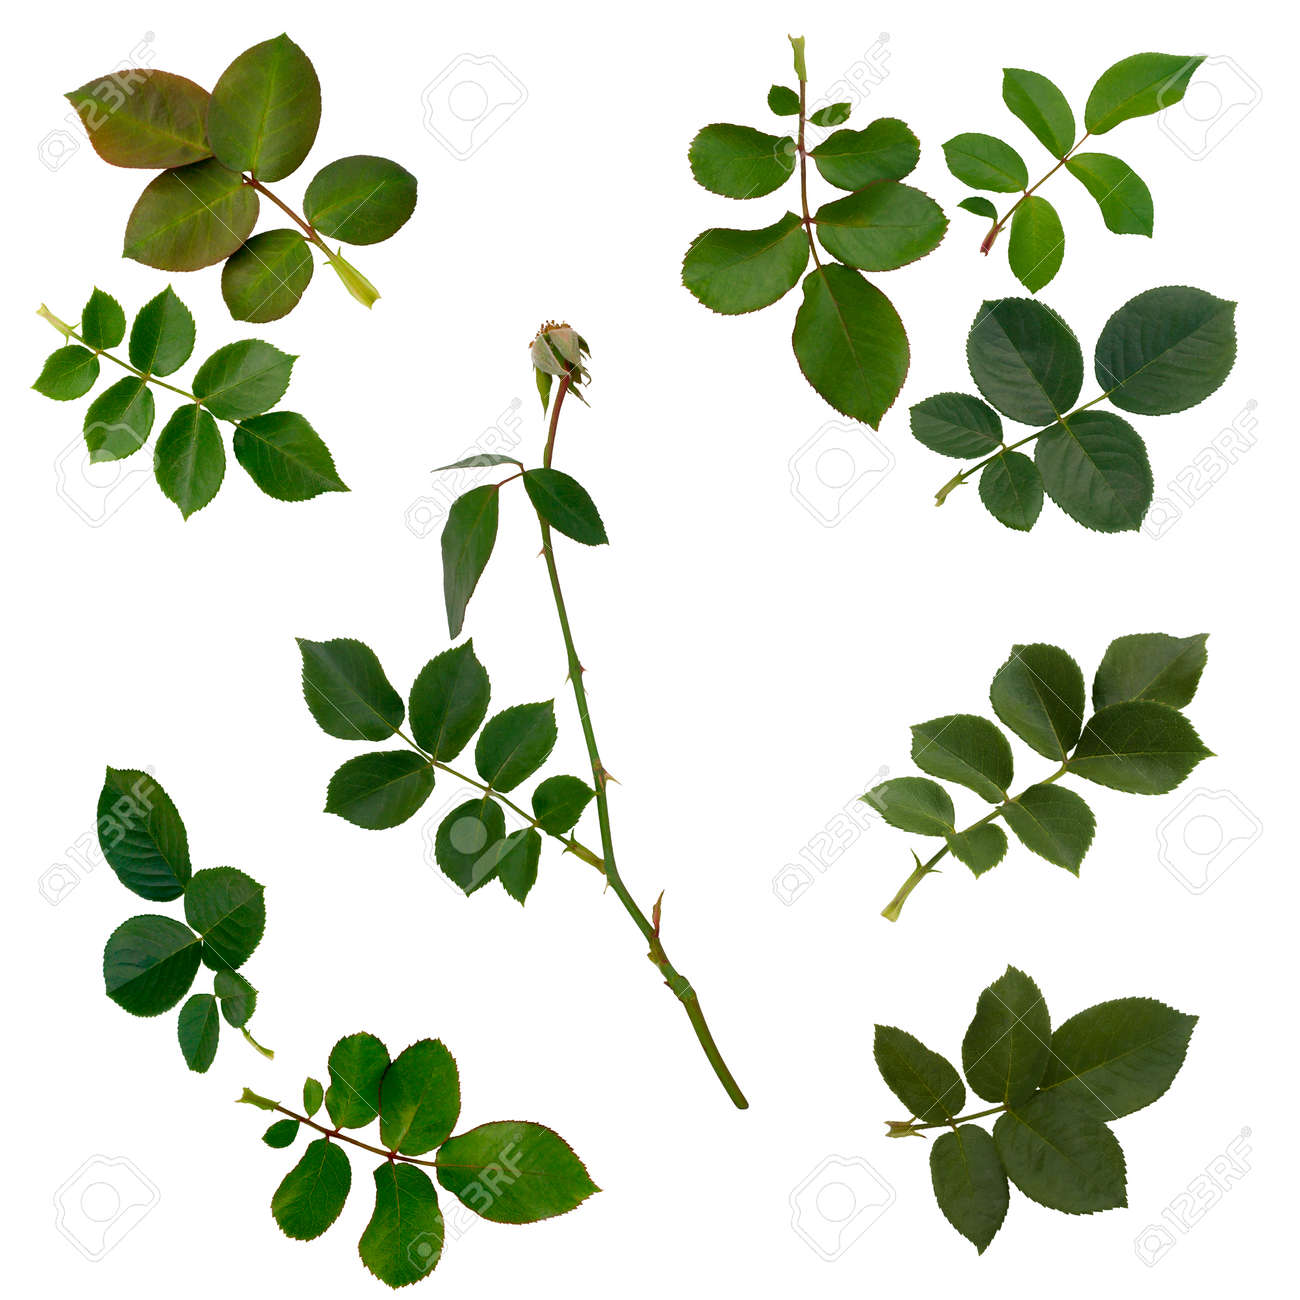 rose leaf stock photos royalty free rose leaf images and pictures